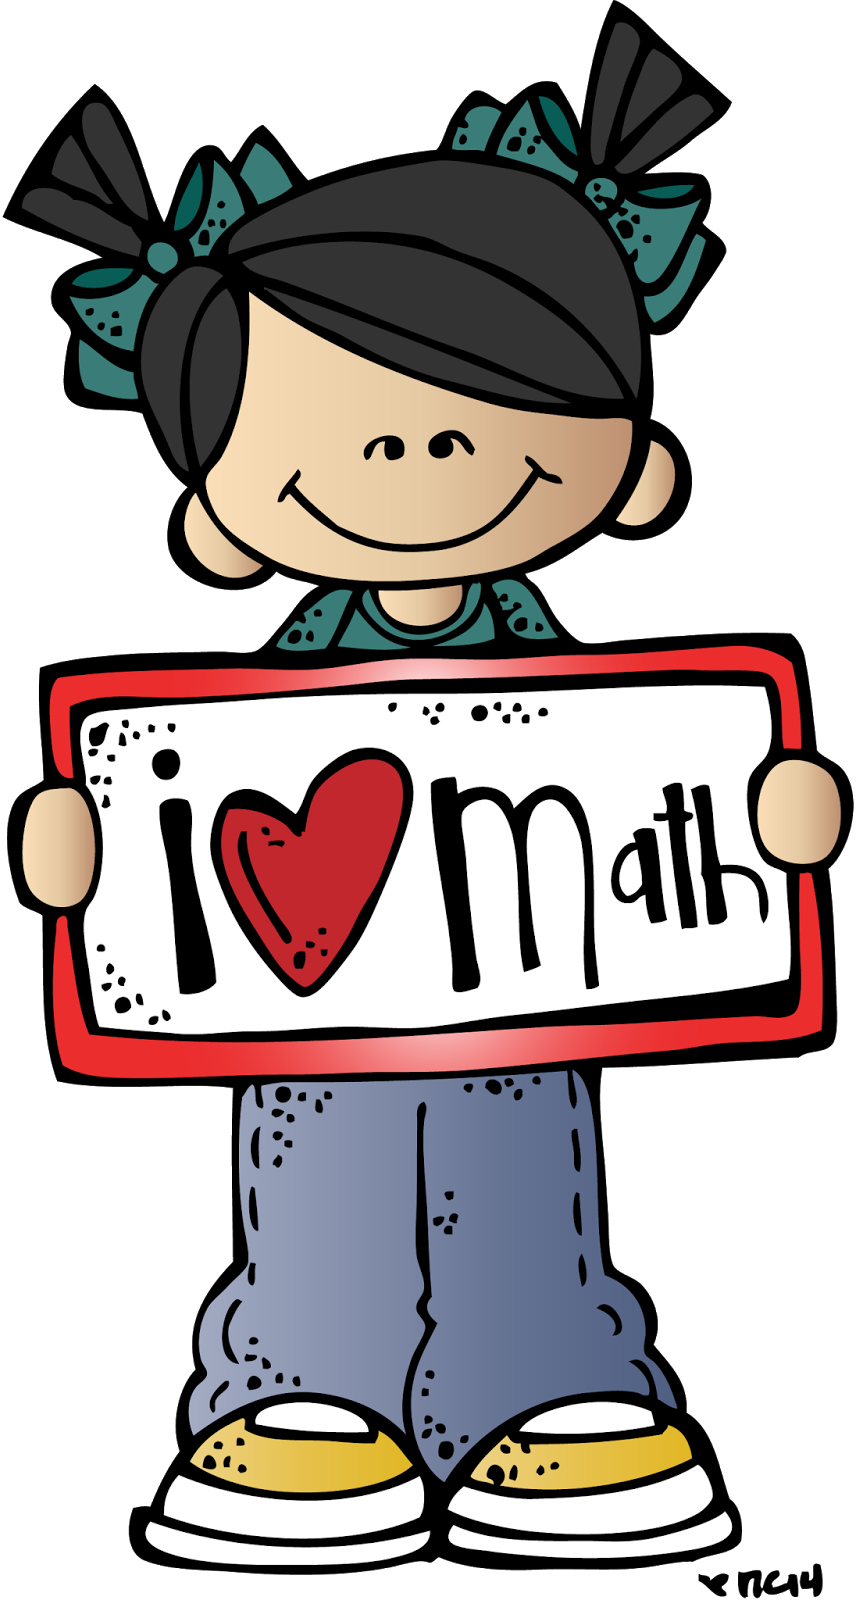 Learn clipart math. Cliparts for free